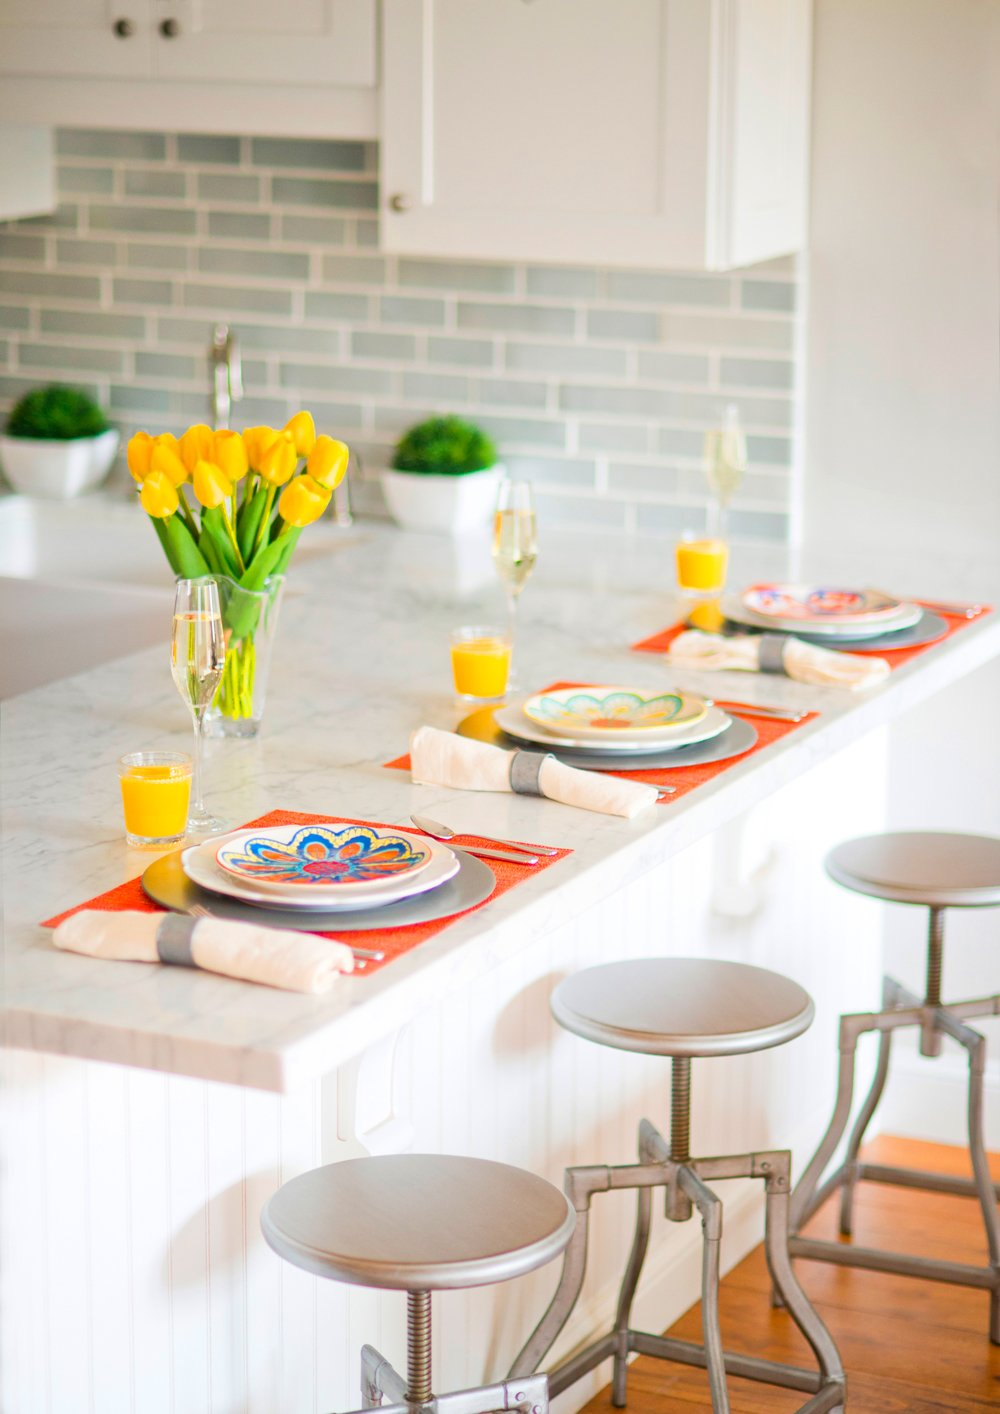 Spring Breakfast Ideas: Brunch at Home | Crate and Barrel Blog